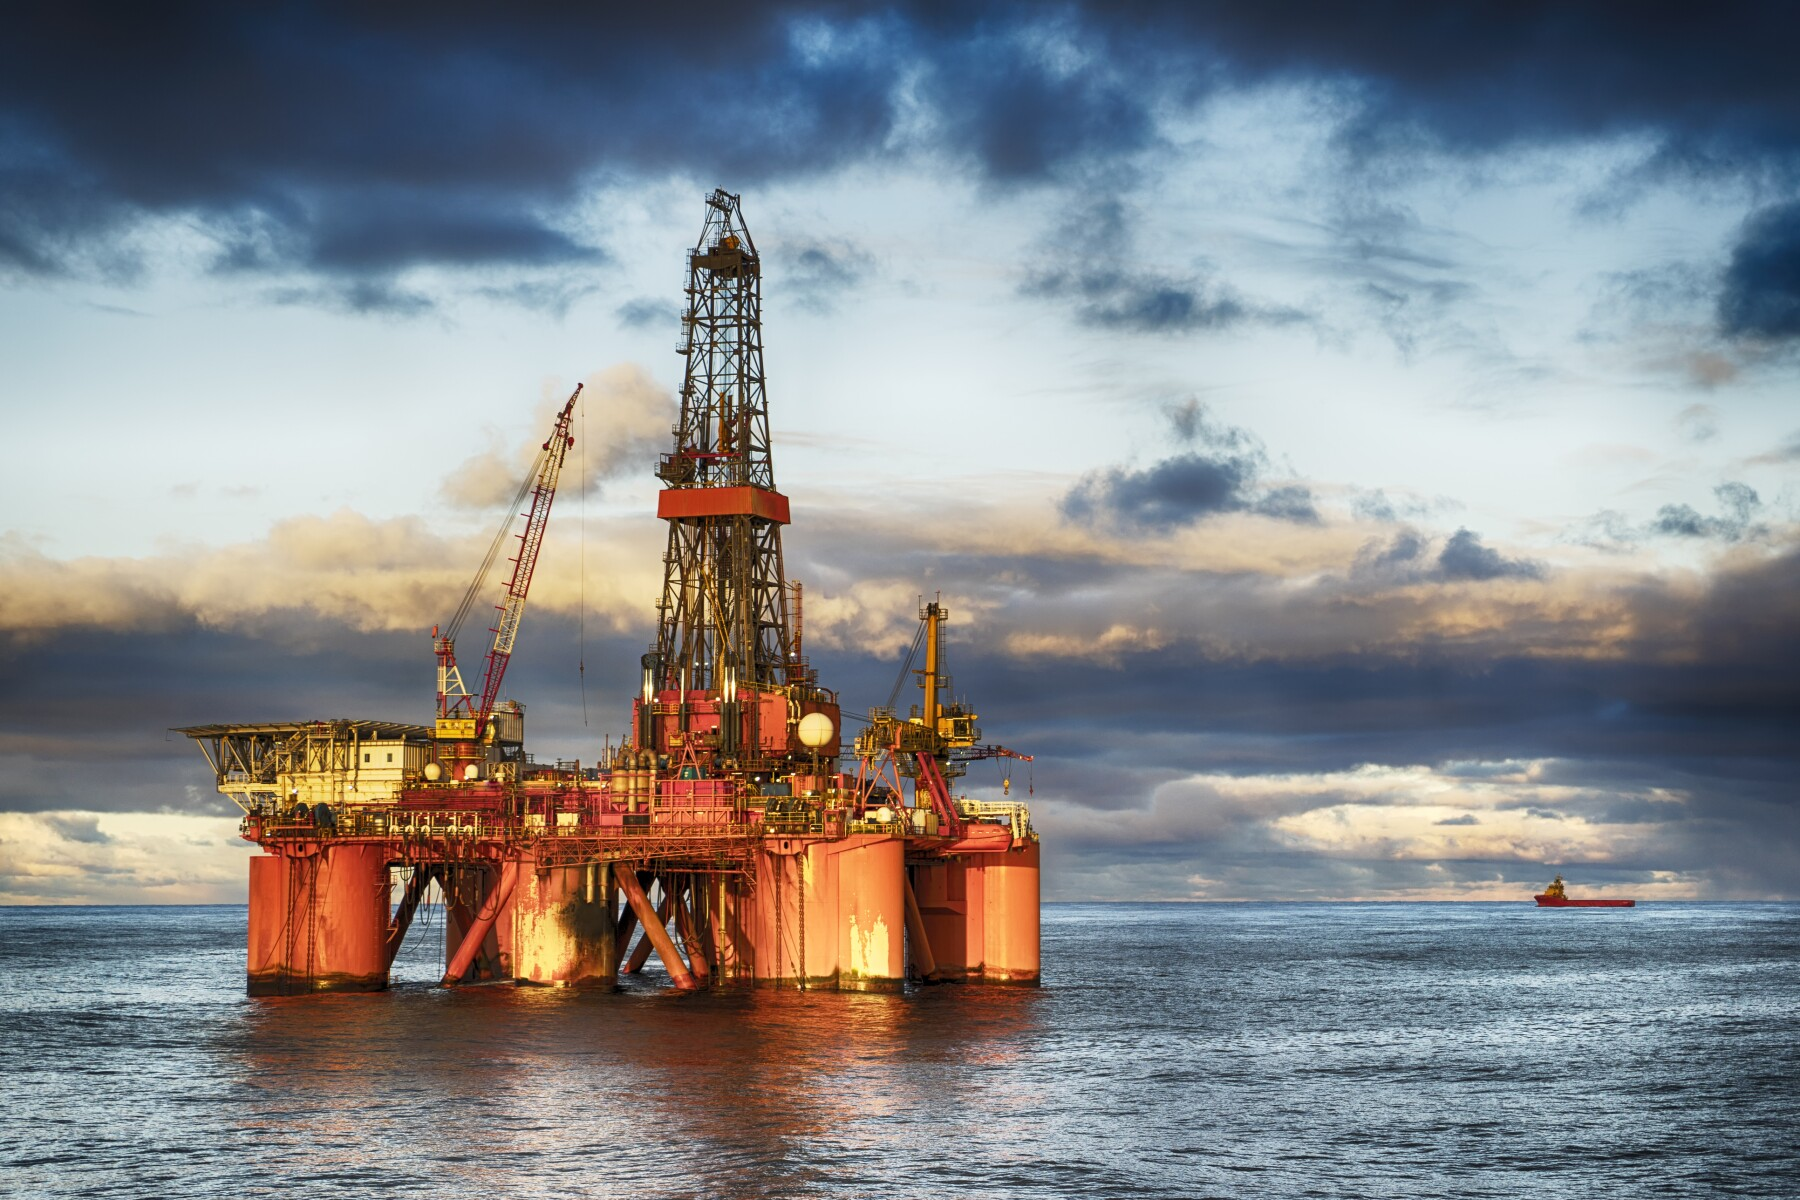 HDR of Offshore drilling rig at day